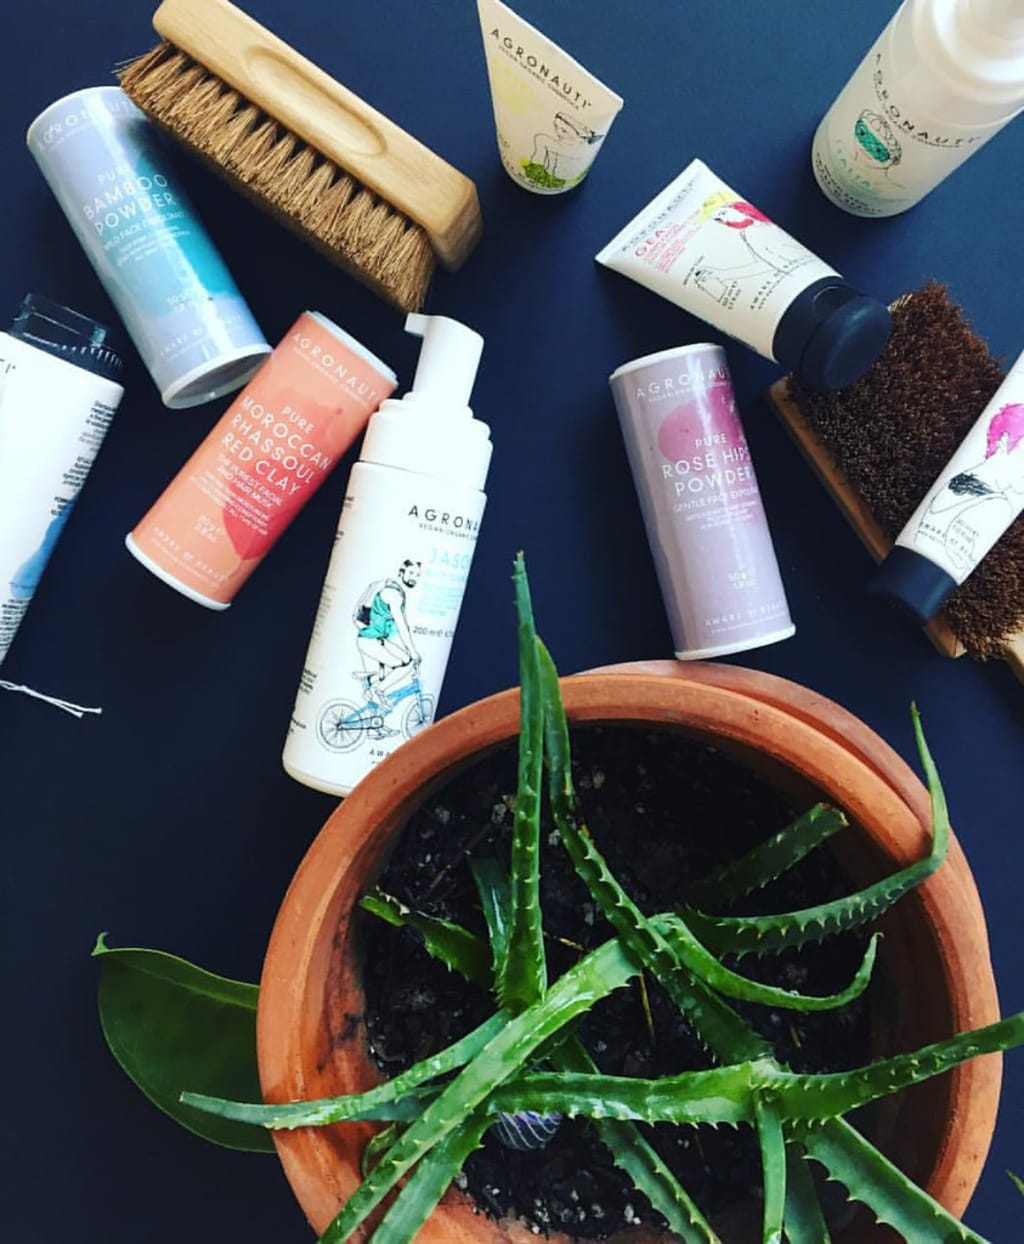 Two BIG Reasons to Use Organic Cosmetics and Why Is It Healthier to Go Organic? Food, Skincare, and More